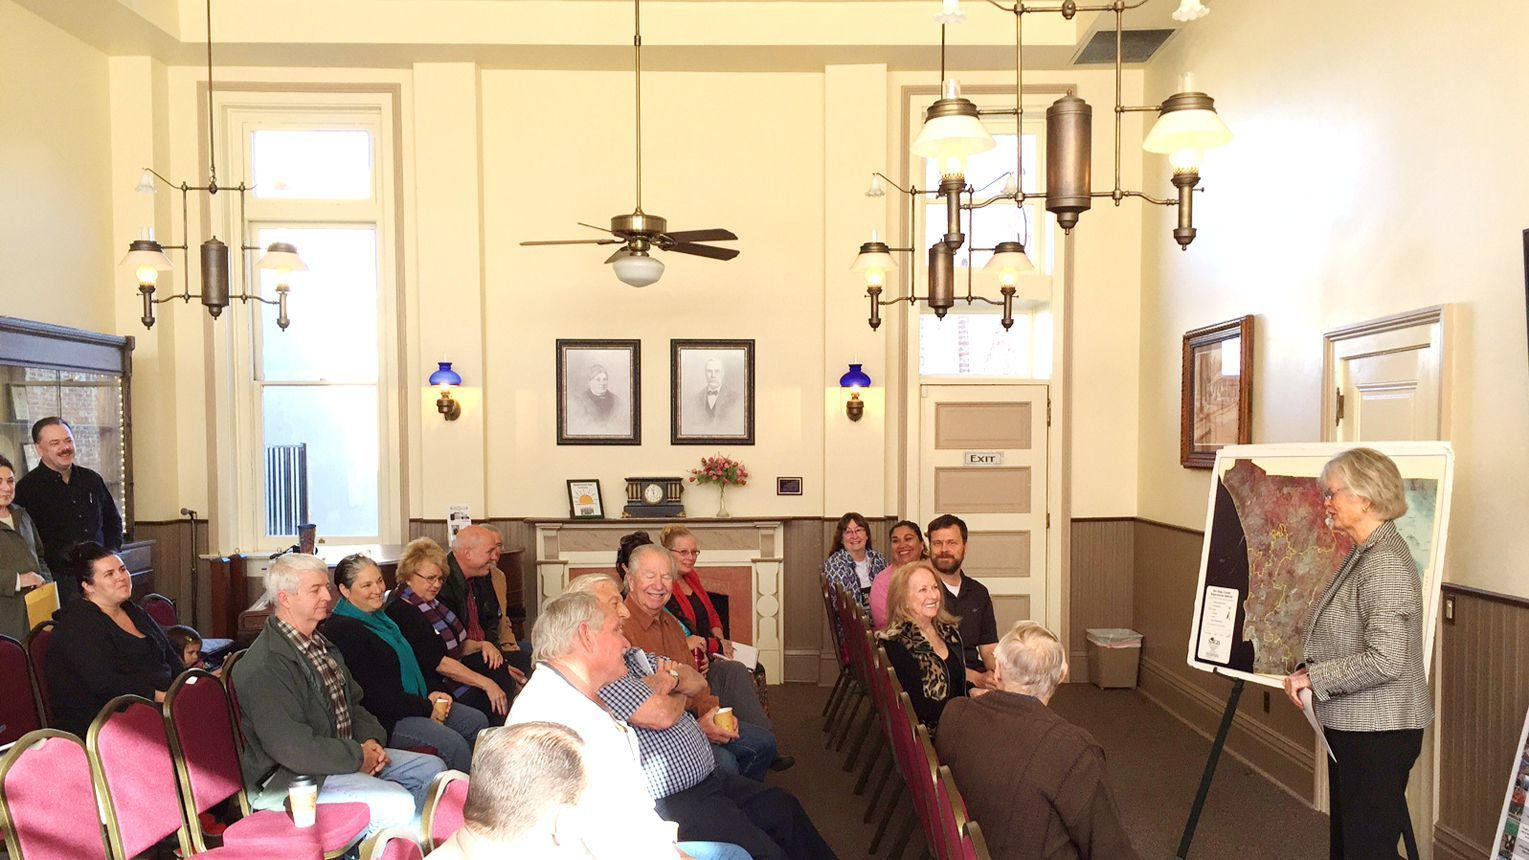 County Supervisor Dianne Jacob, right, listens as members of the public introduce themselves during her Feb. 23 Coffee with Constituents in Ramona Town Hall.